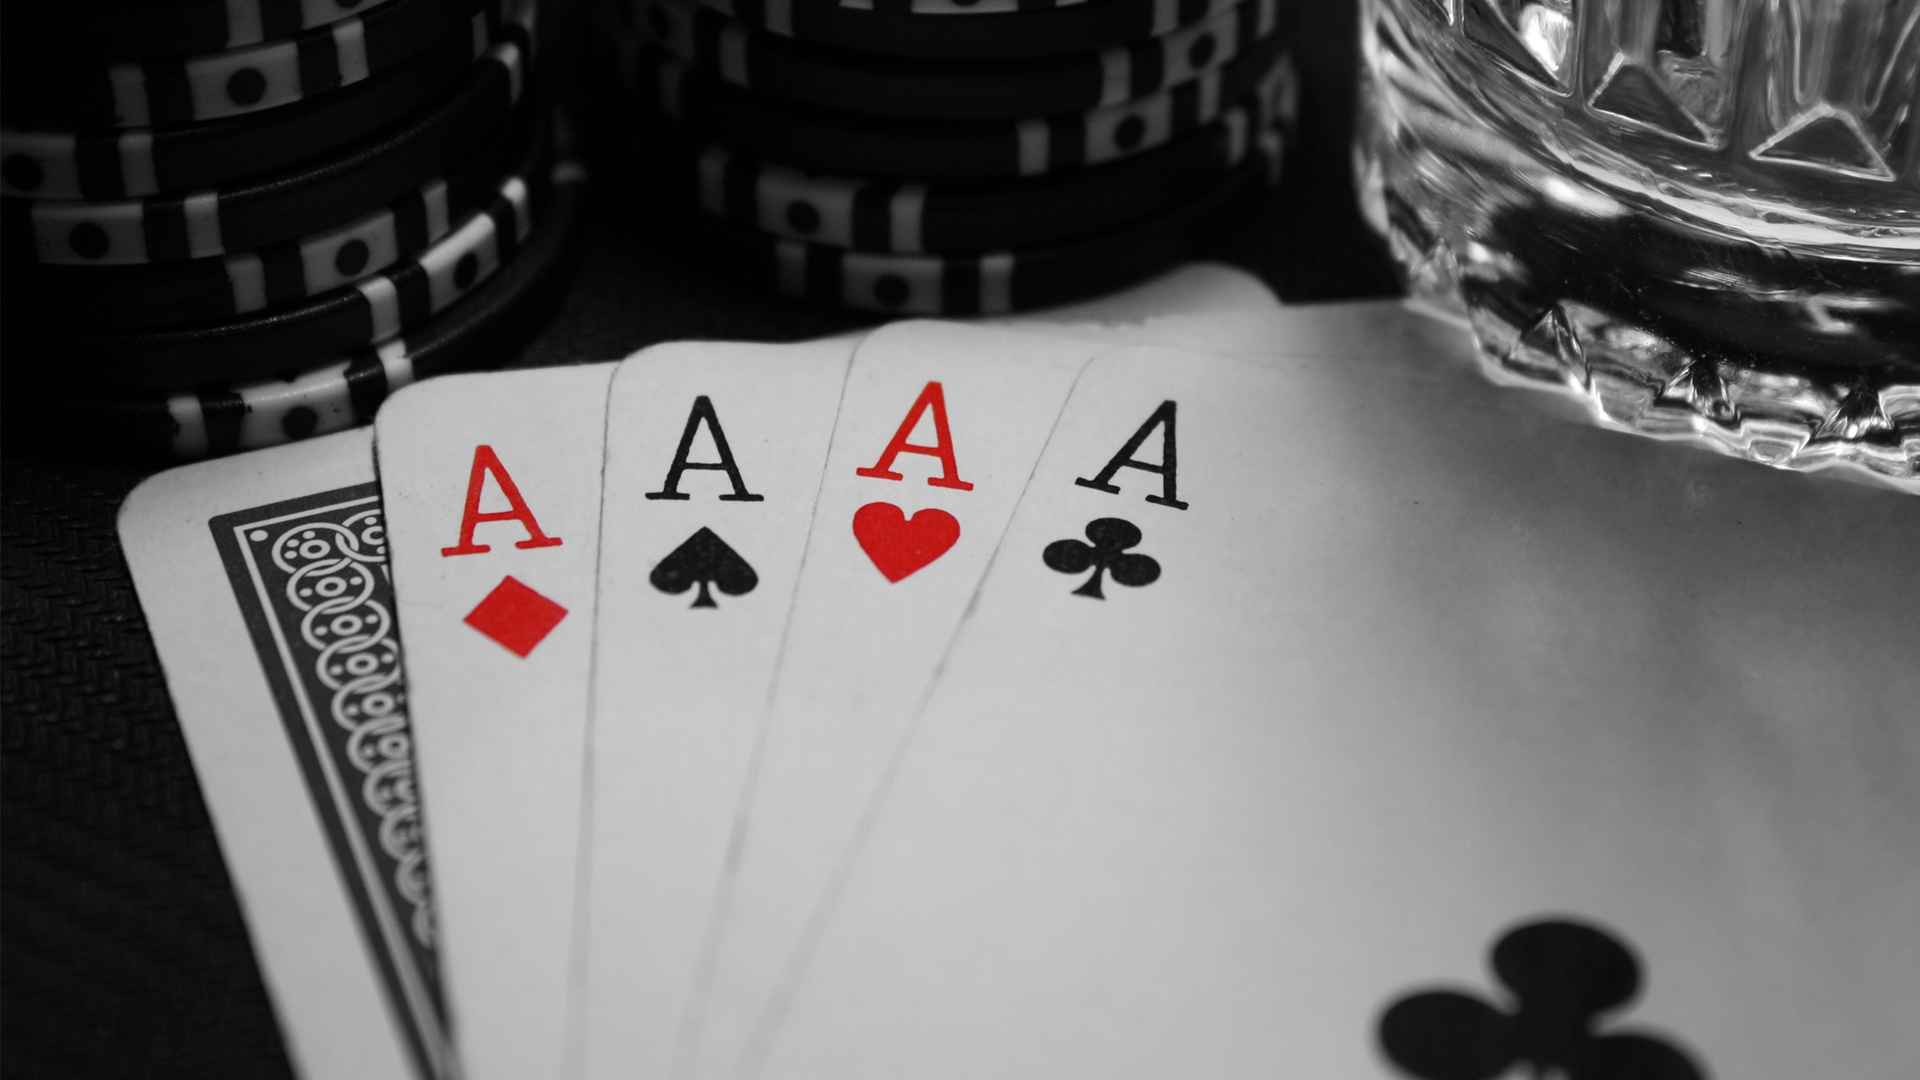 1920x1080 Poker Aces Combination Excitement Chips Wallpaper 1920x1080